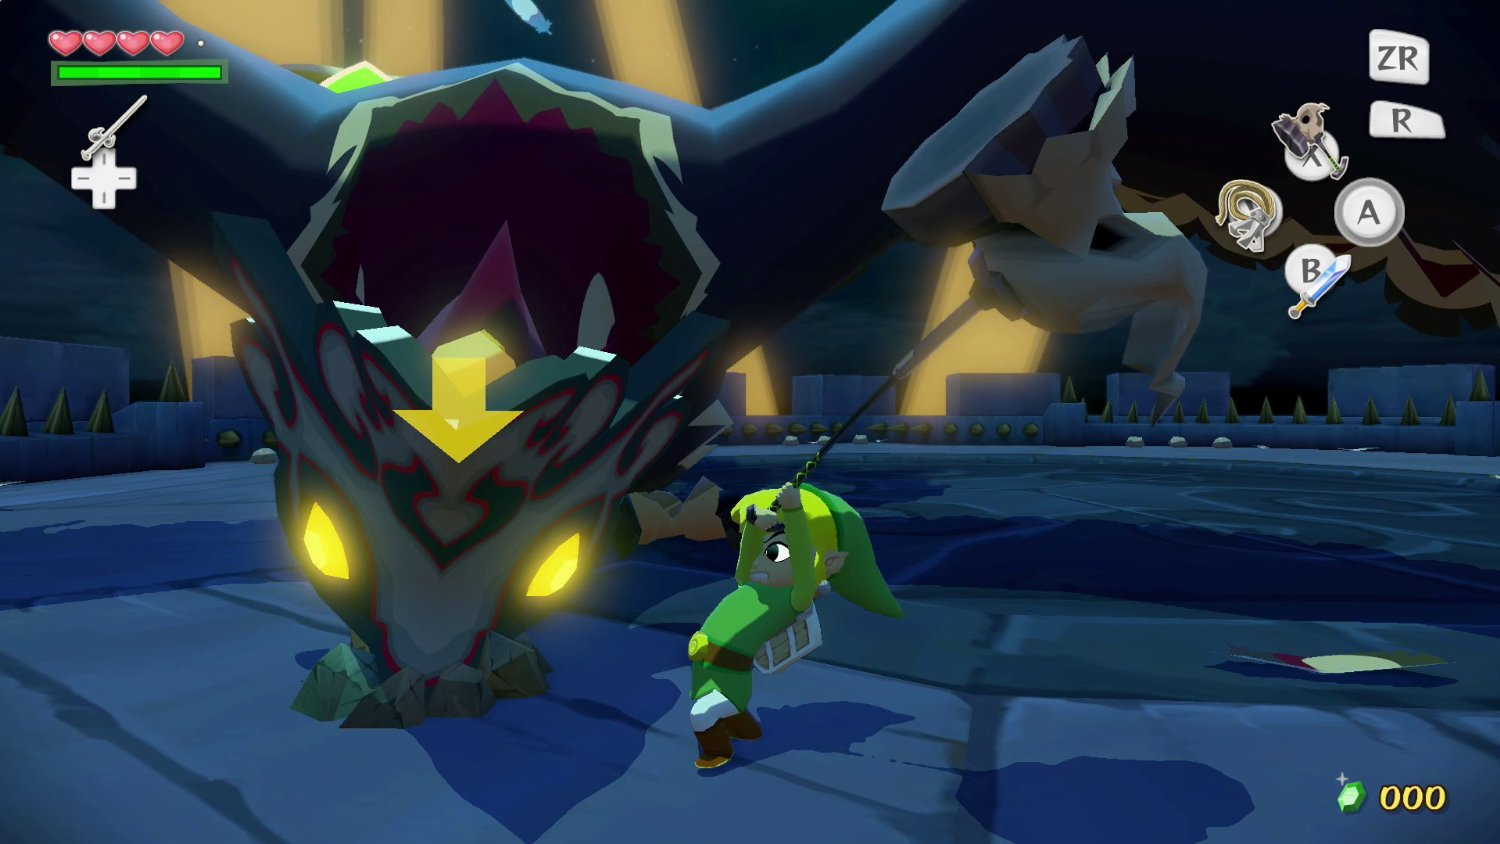 legend of zelda wind waker hd-1.jpg